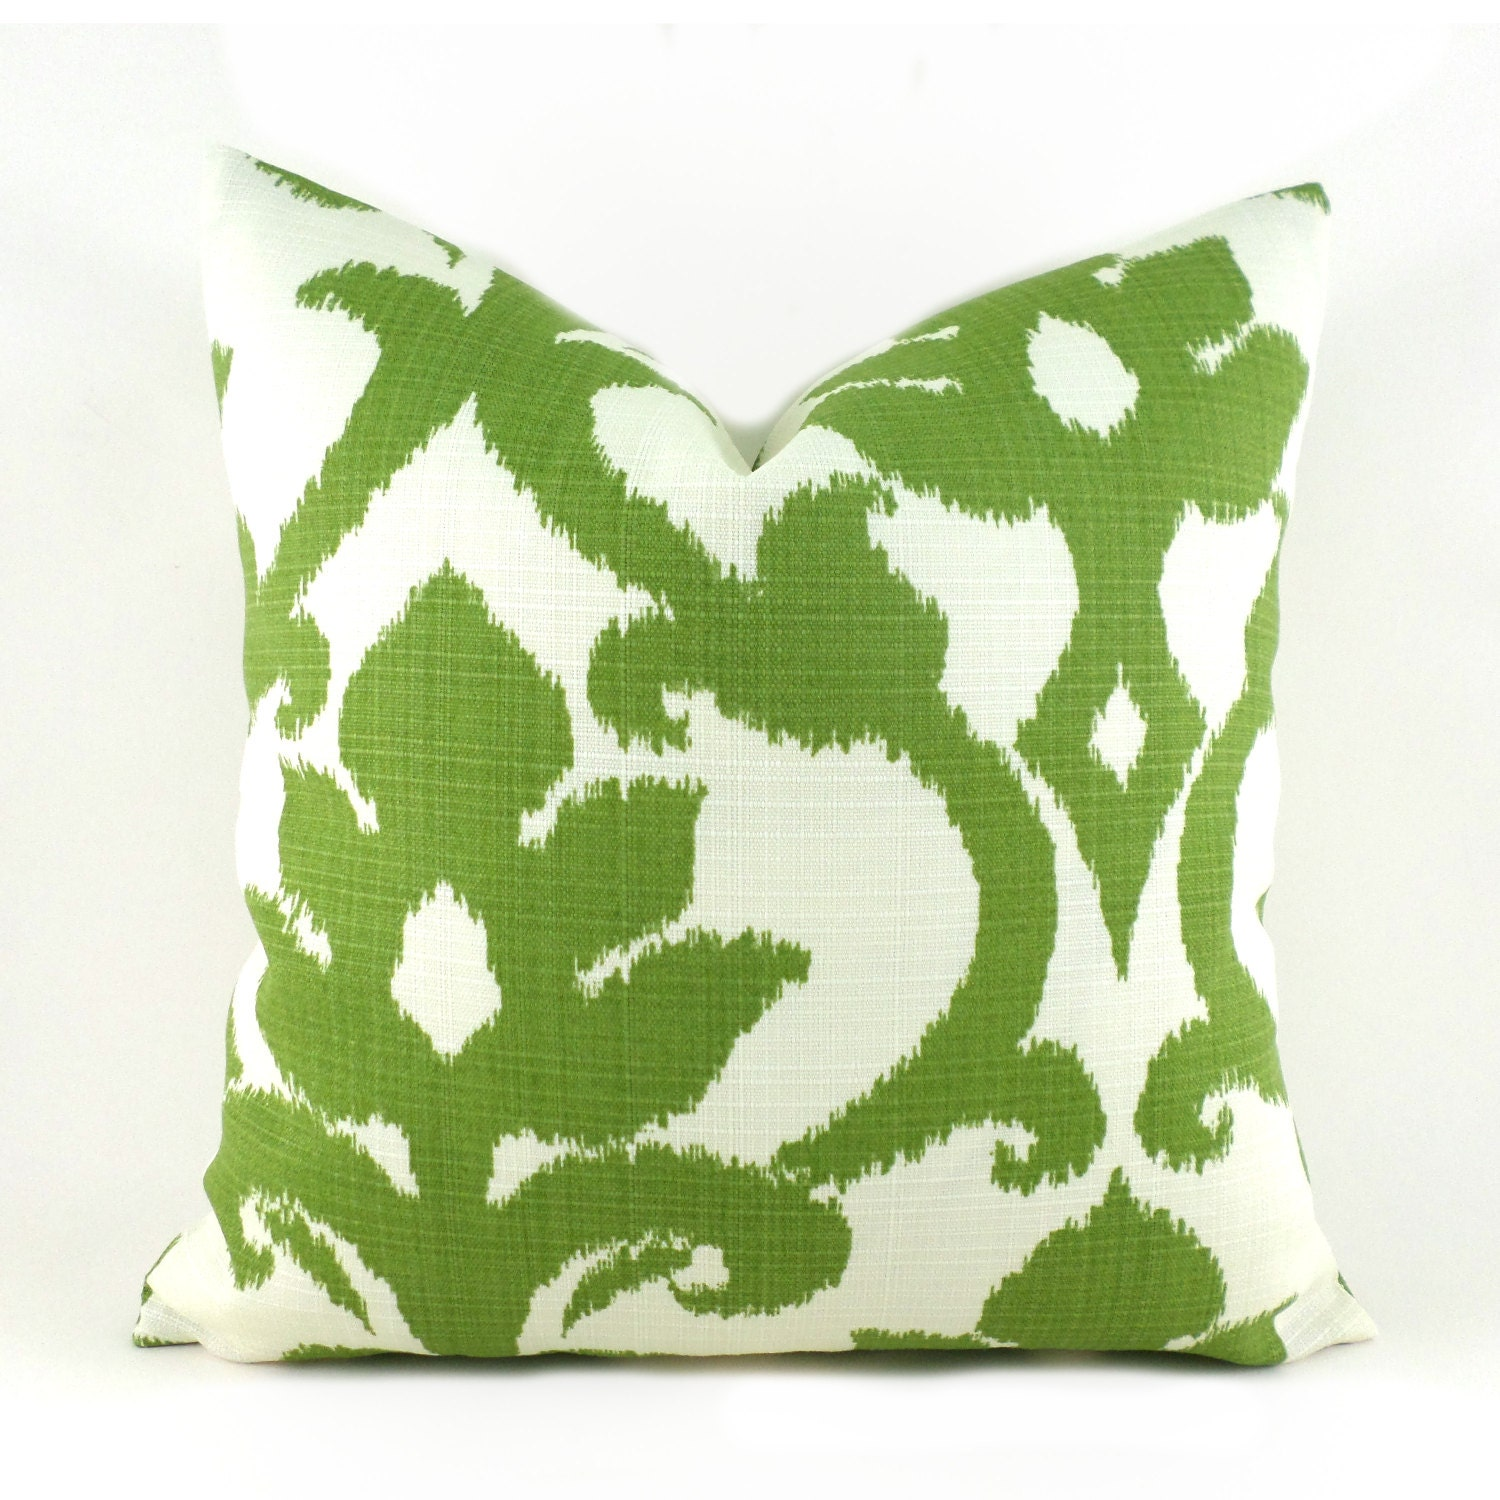 Decorative Outdoor Pillow Covers : 1 Indoor Outdoor Pillow Covers ANY SIZE by MyPillowStudio on Etsy